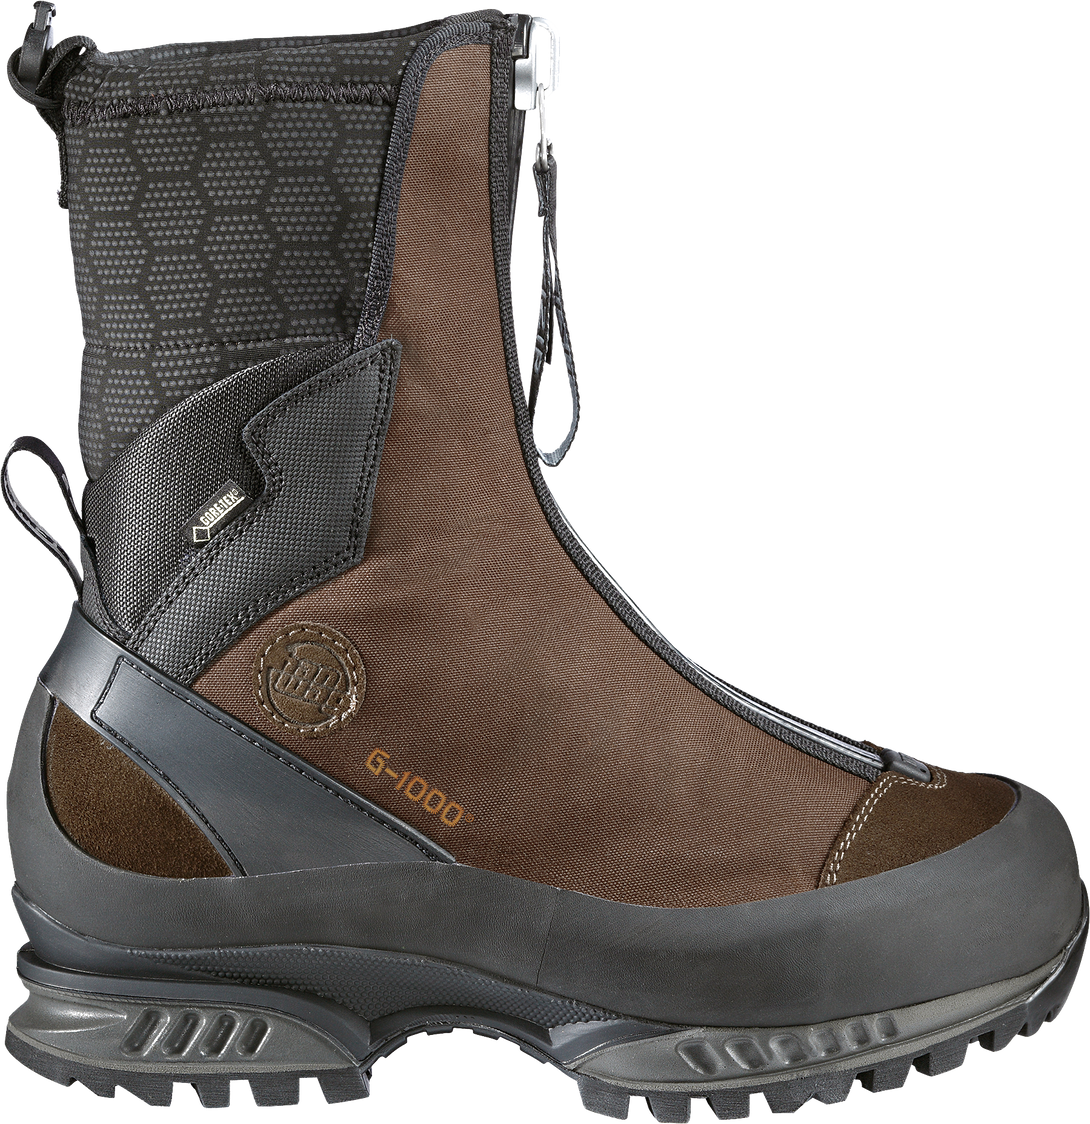 YELLOWSTONE GAITER GTX